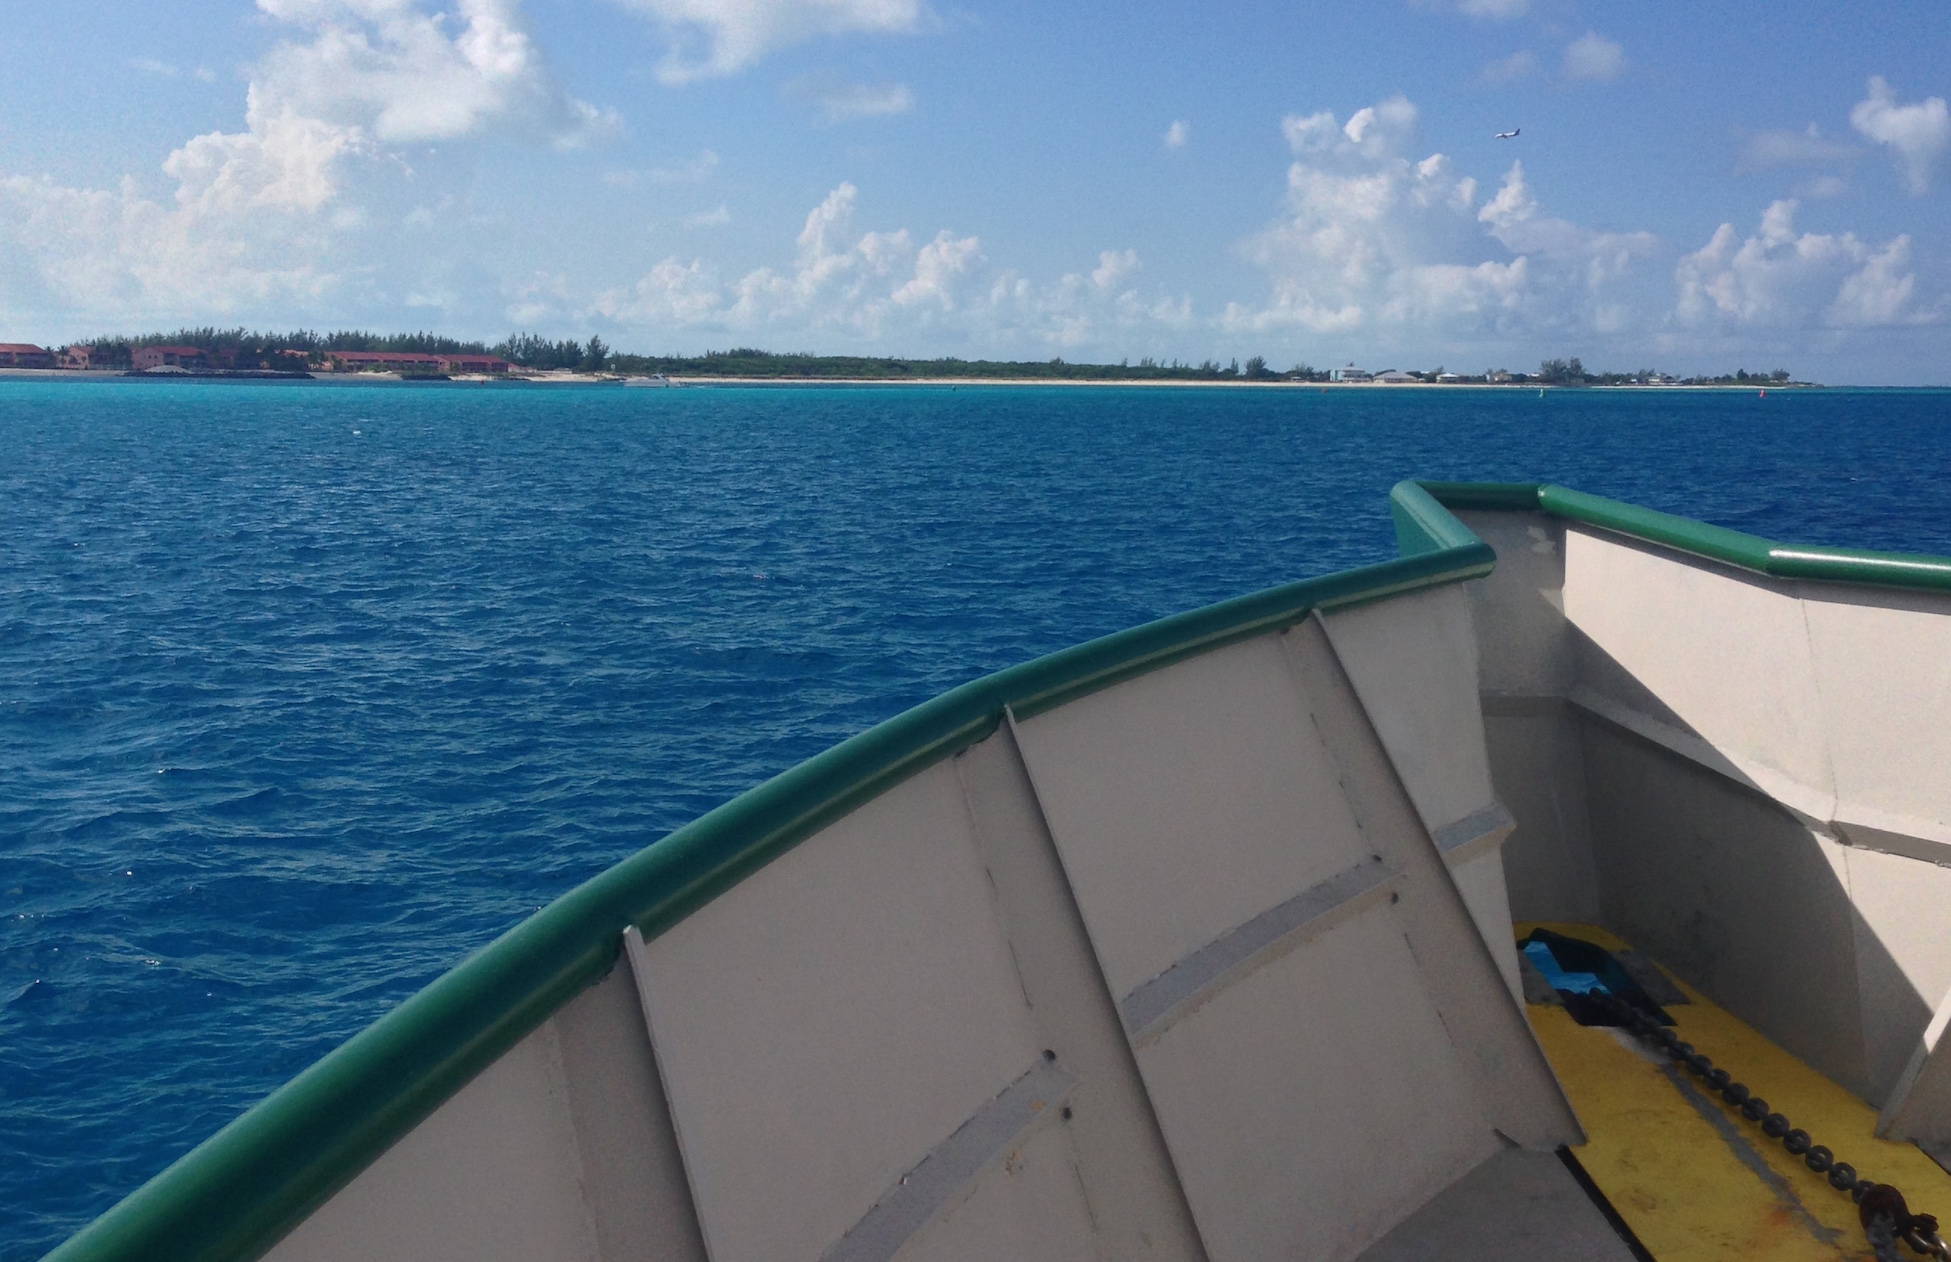 Clearning customs in Bimini, Bahamas